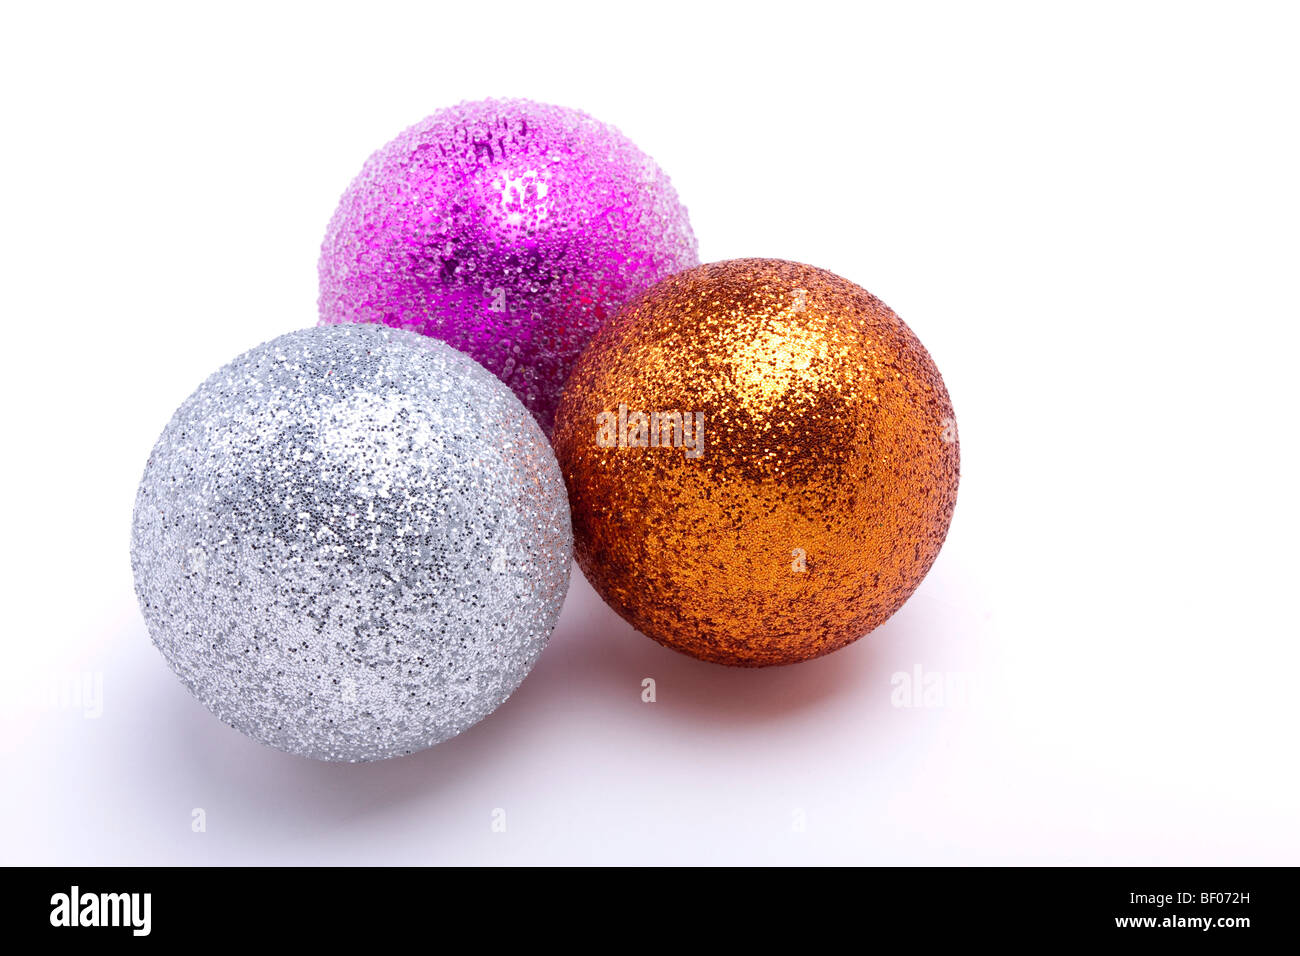 christmas bauble decorations isolated against white background cut out stock image